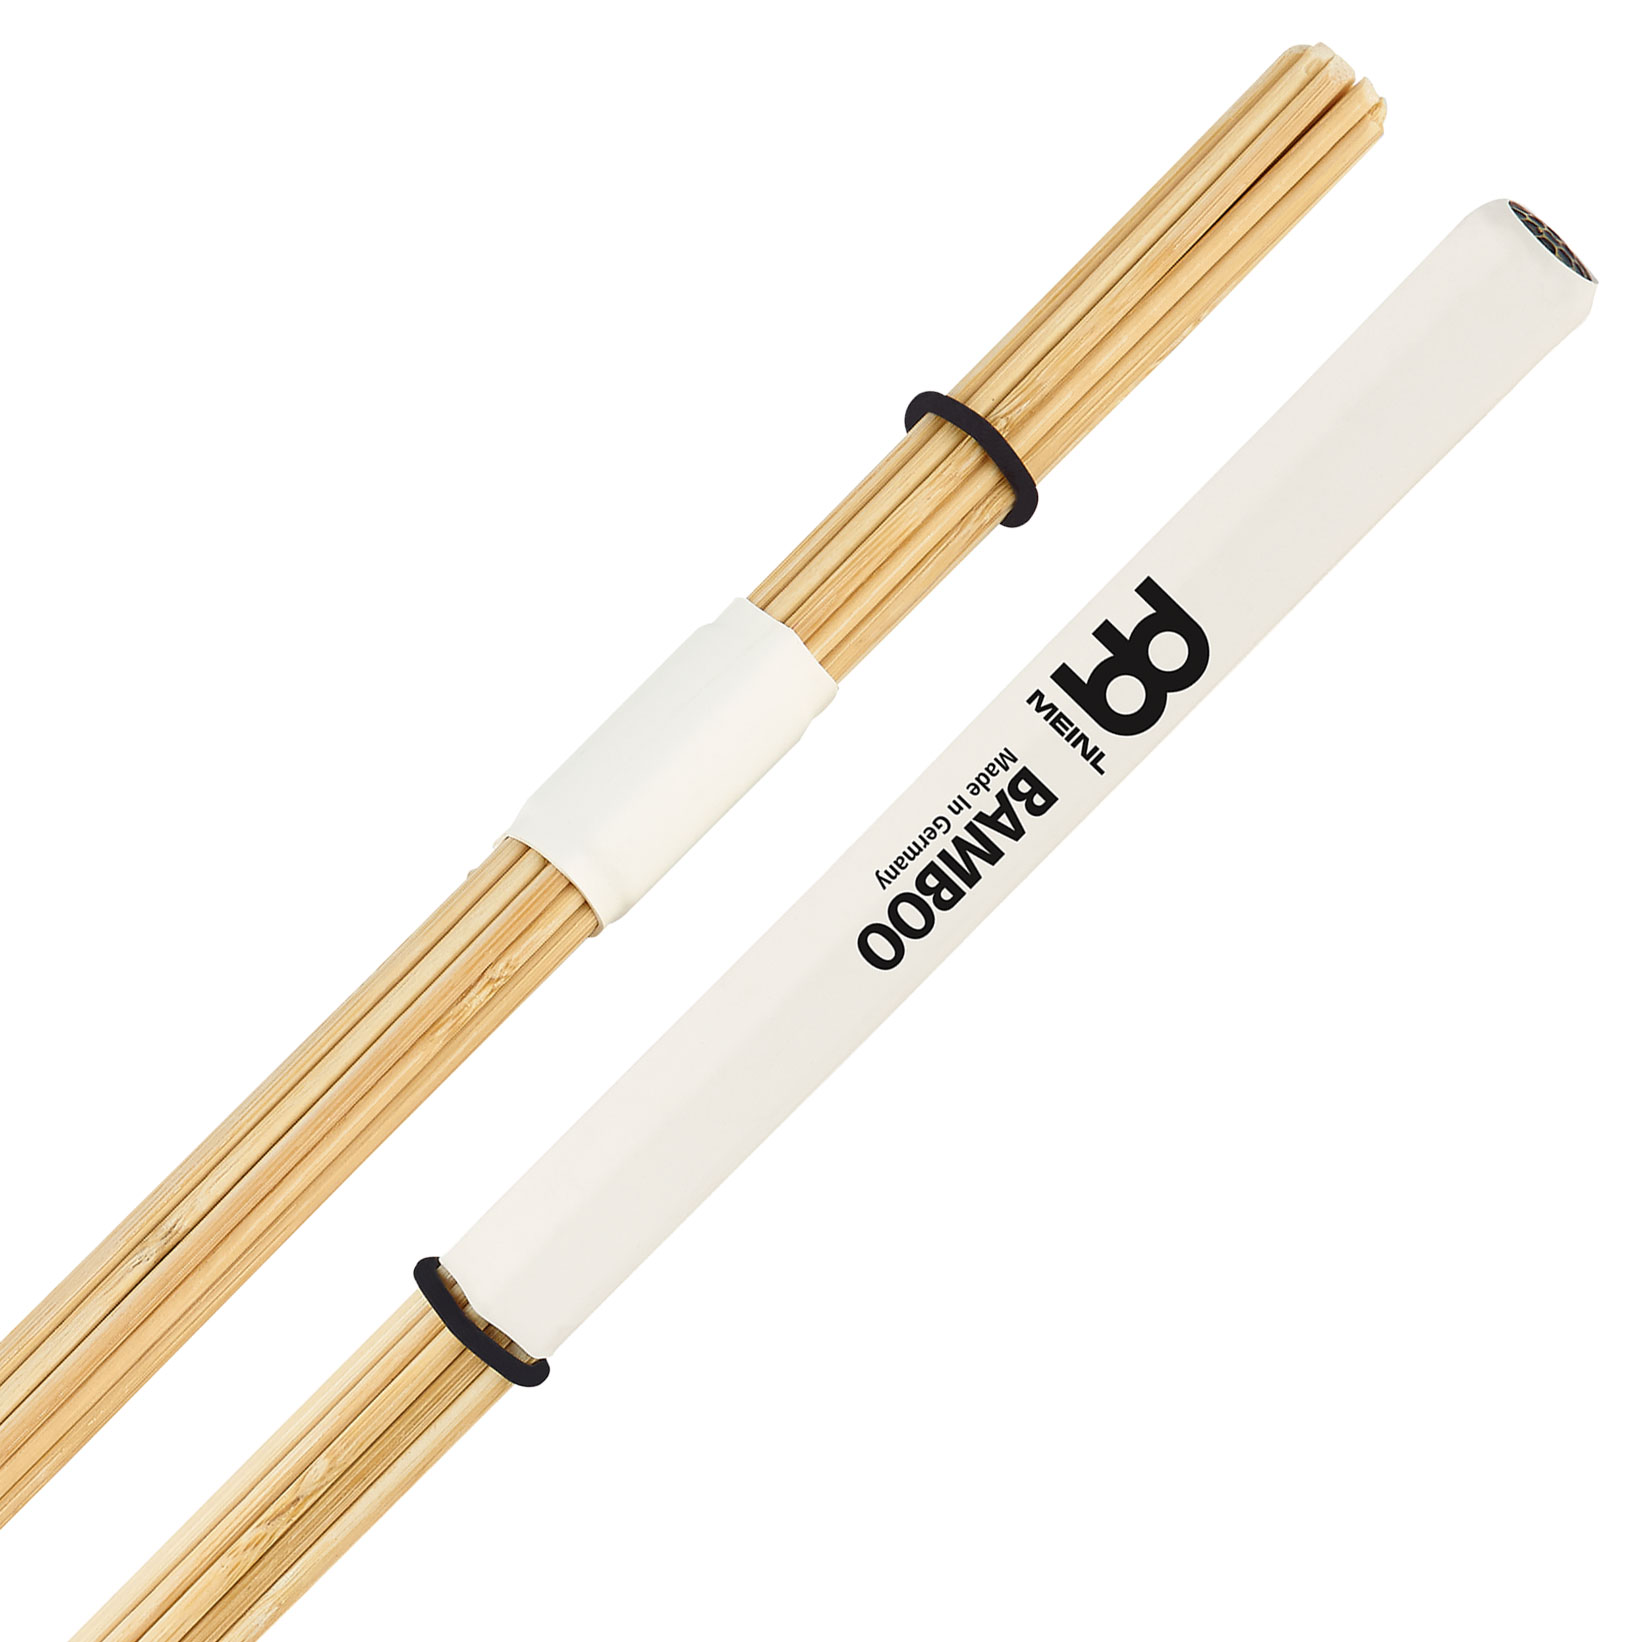 Meinl Bamboo Multi-Sticks